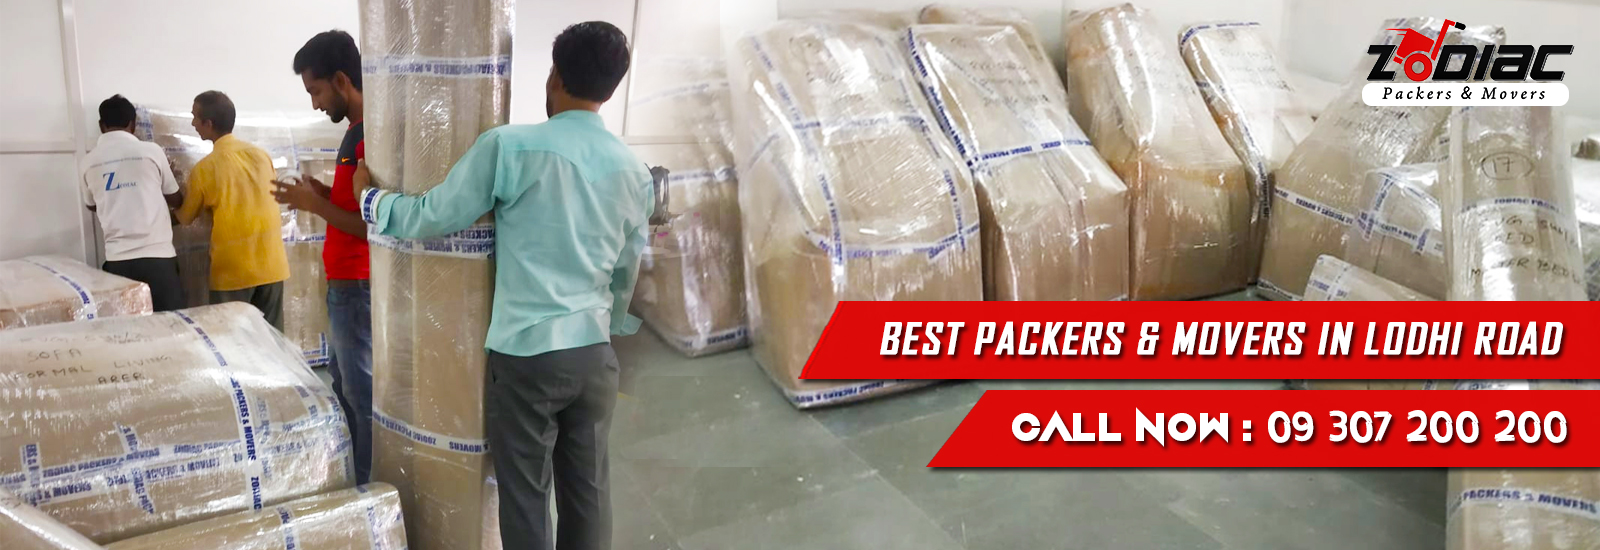 Packers and Movers in Lodhi Road